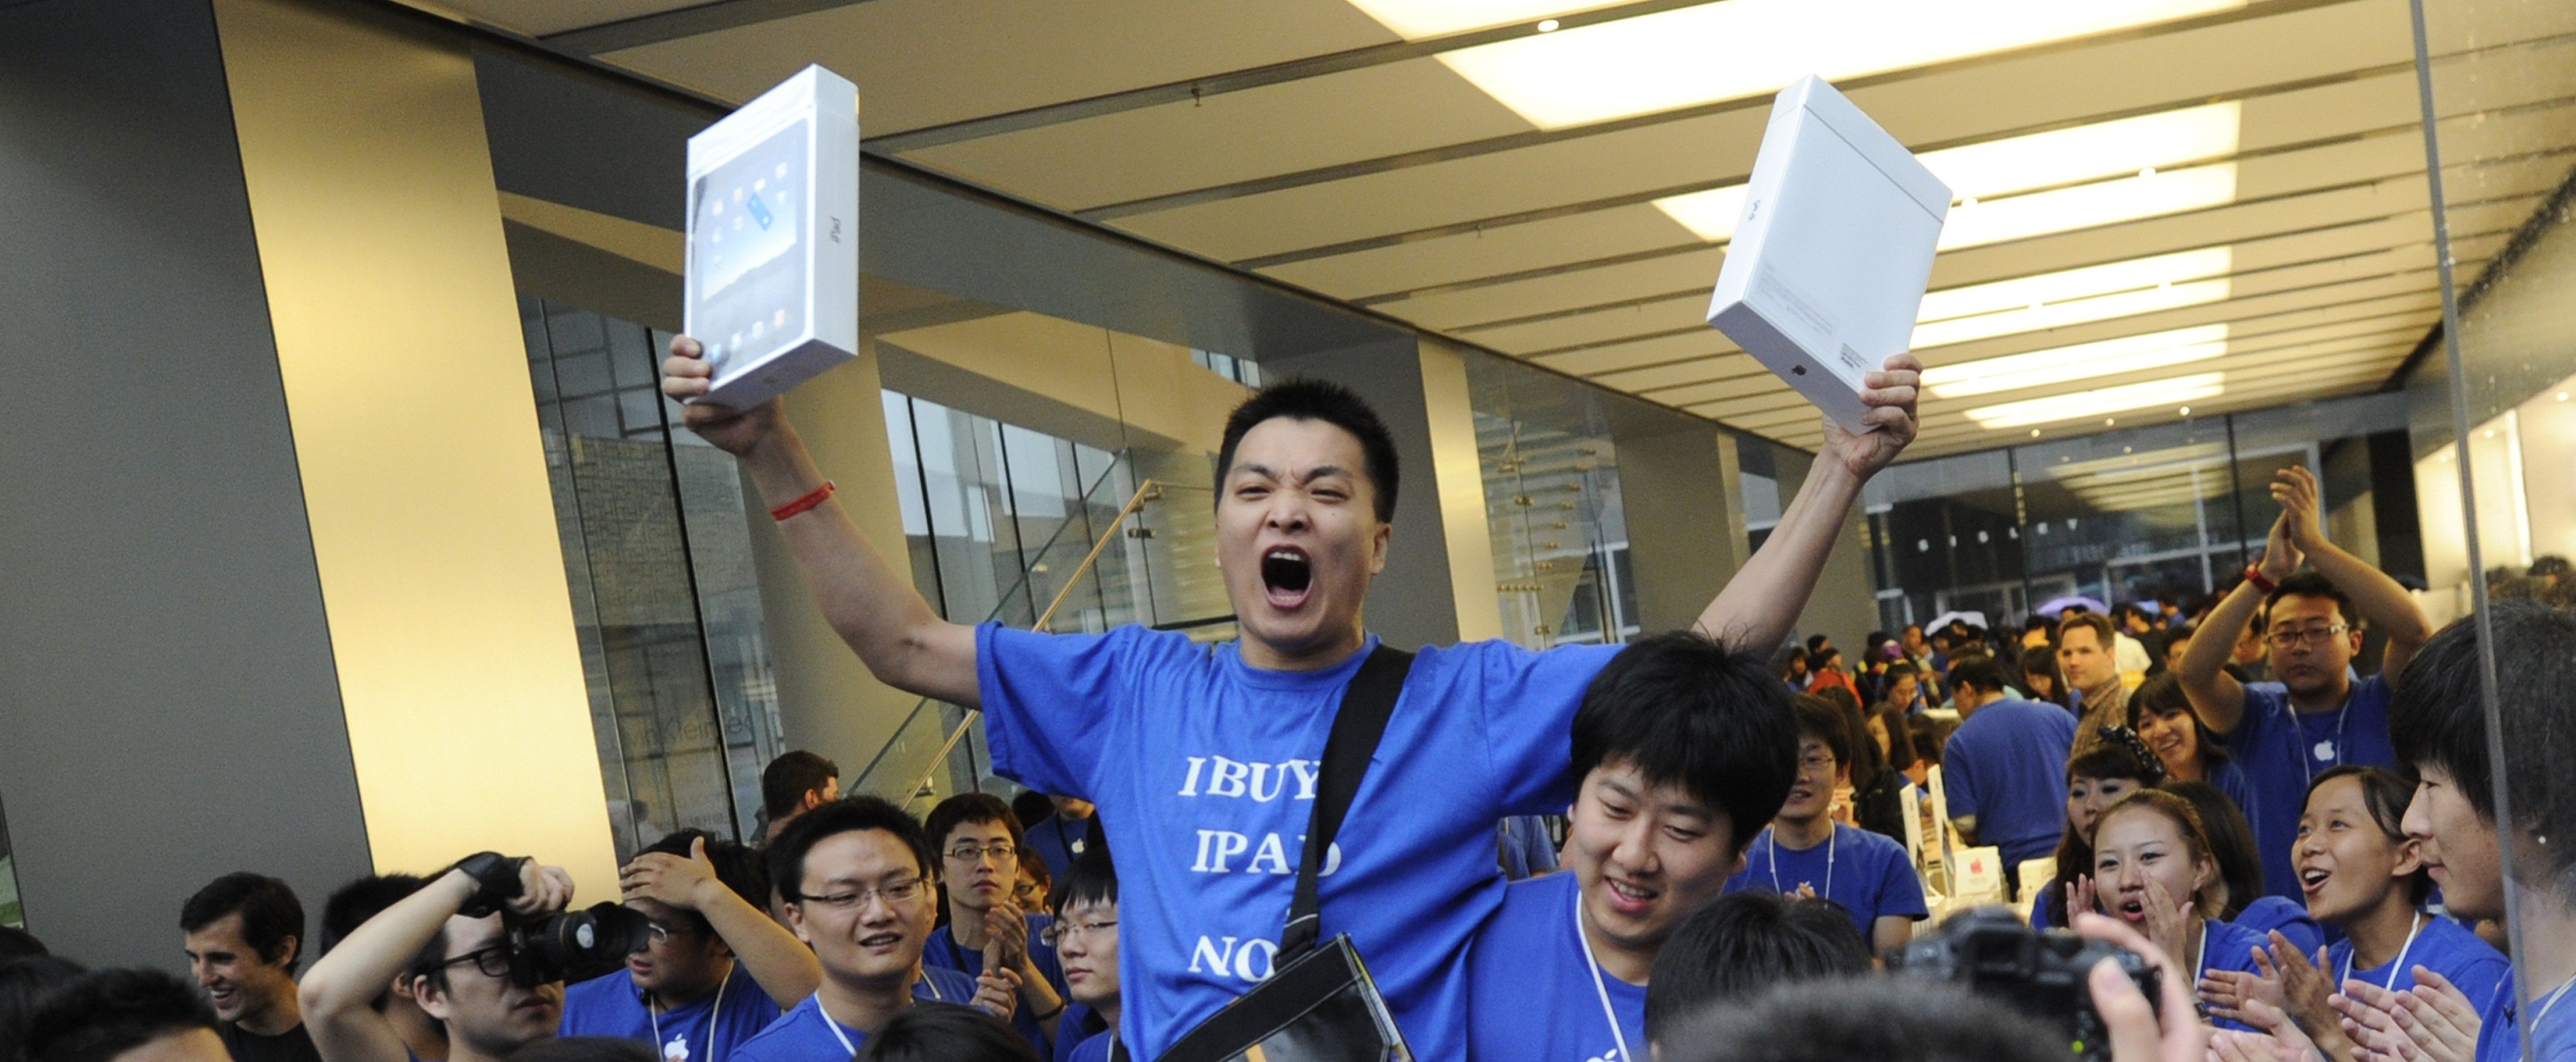 Apple customer Han Ziwen shouts holding